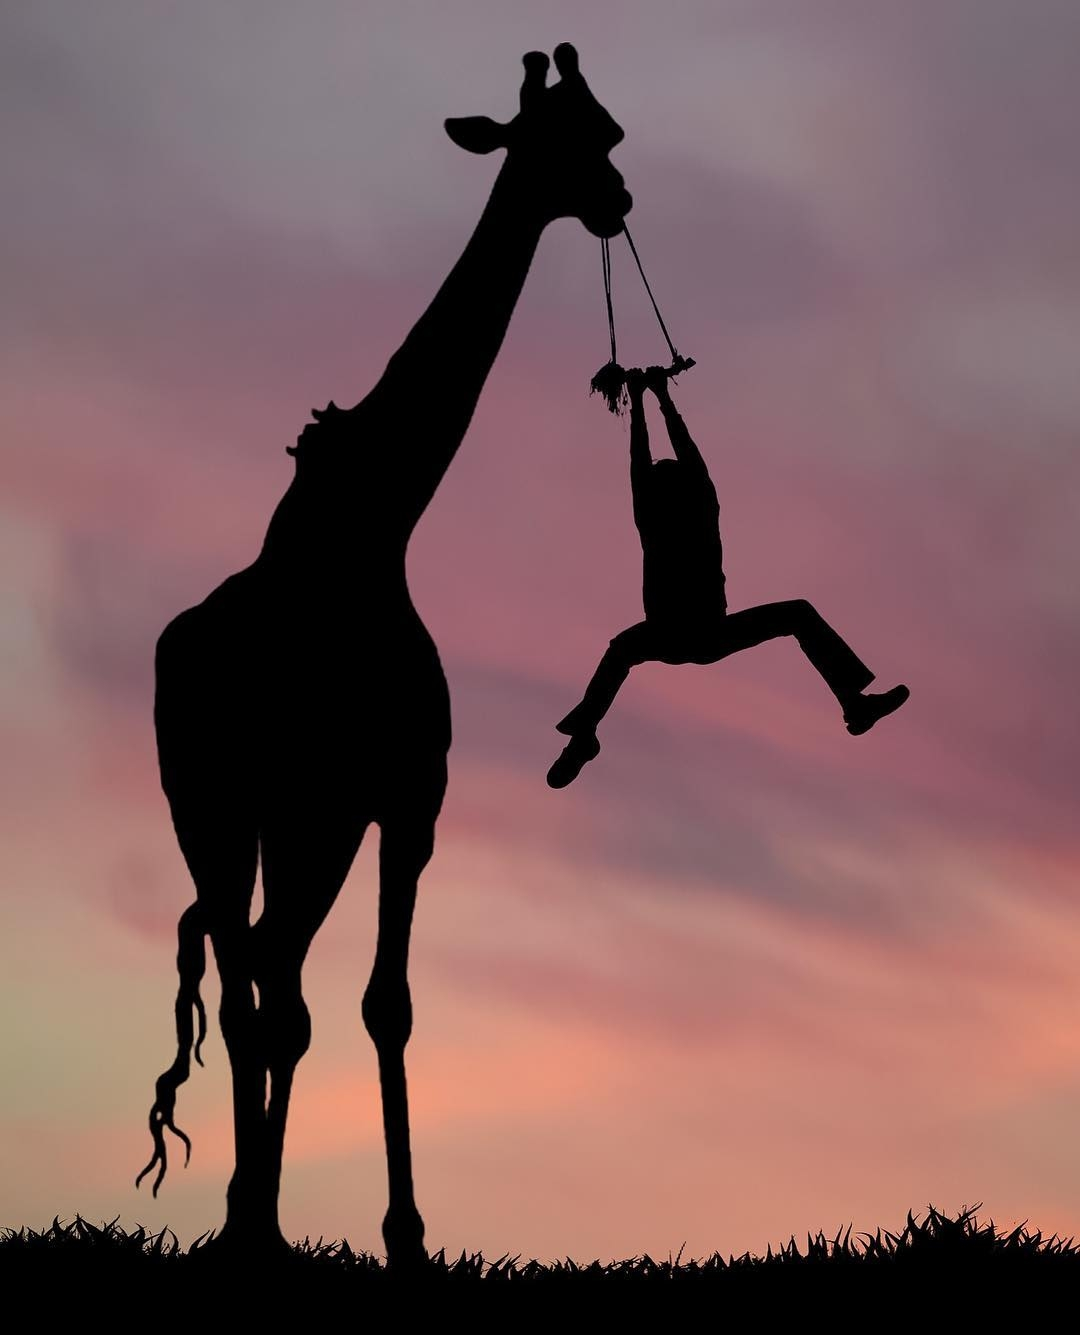 12-Giraffe-Swing-Dominic-Liam-Beautifully-Manipulated-Pictures-at-Sunrise-www-designstack-co